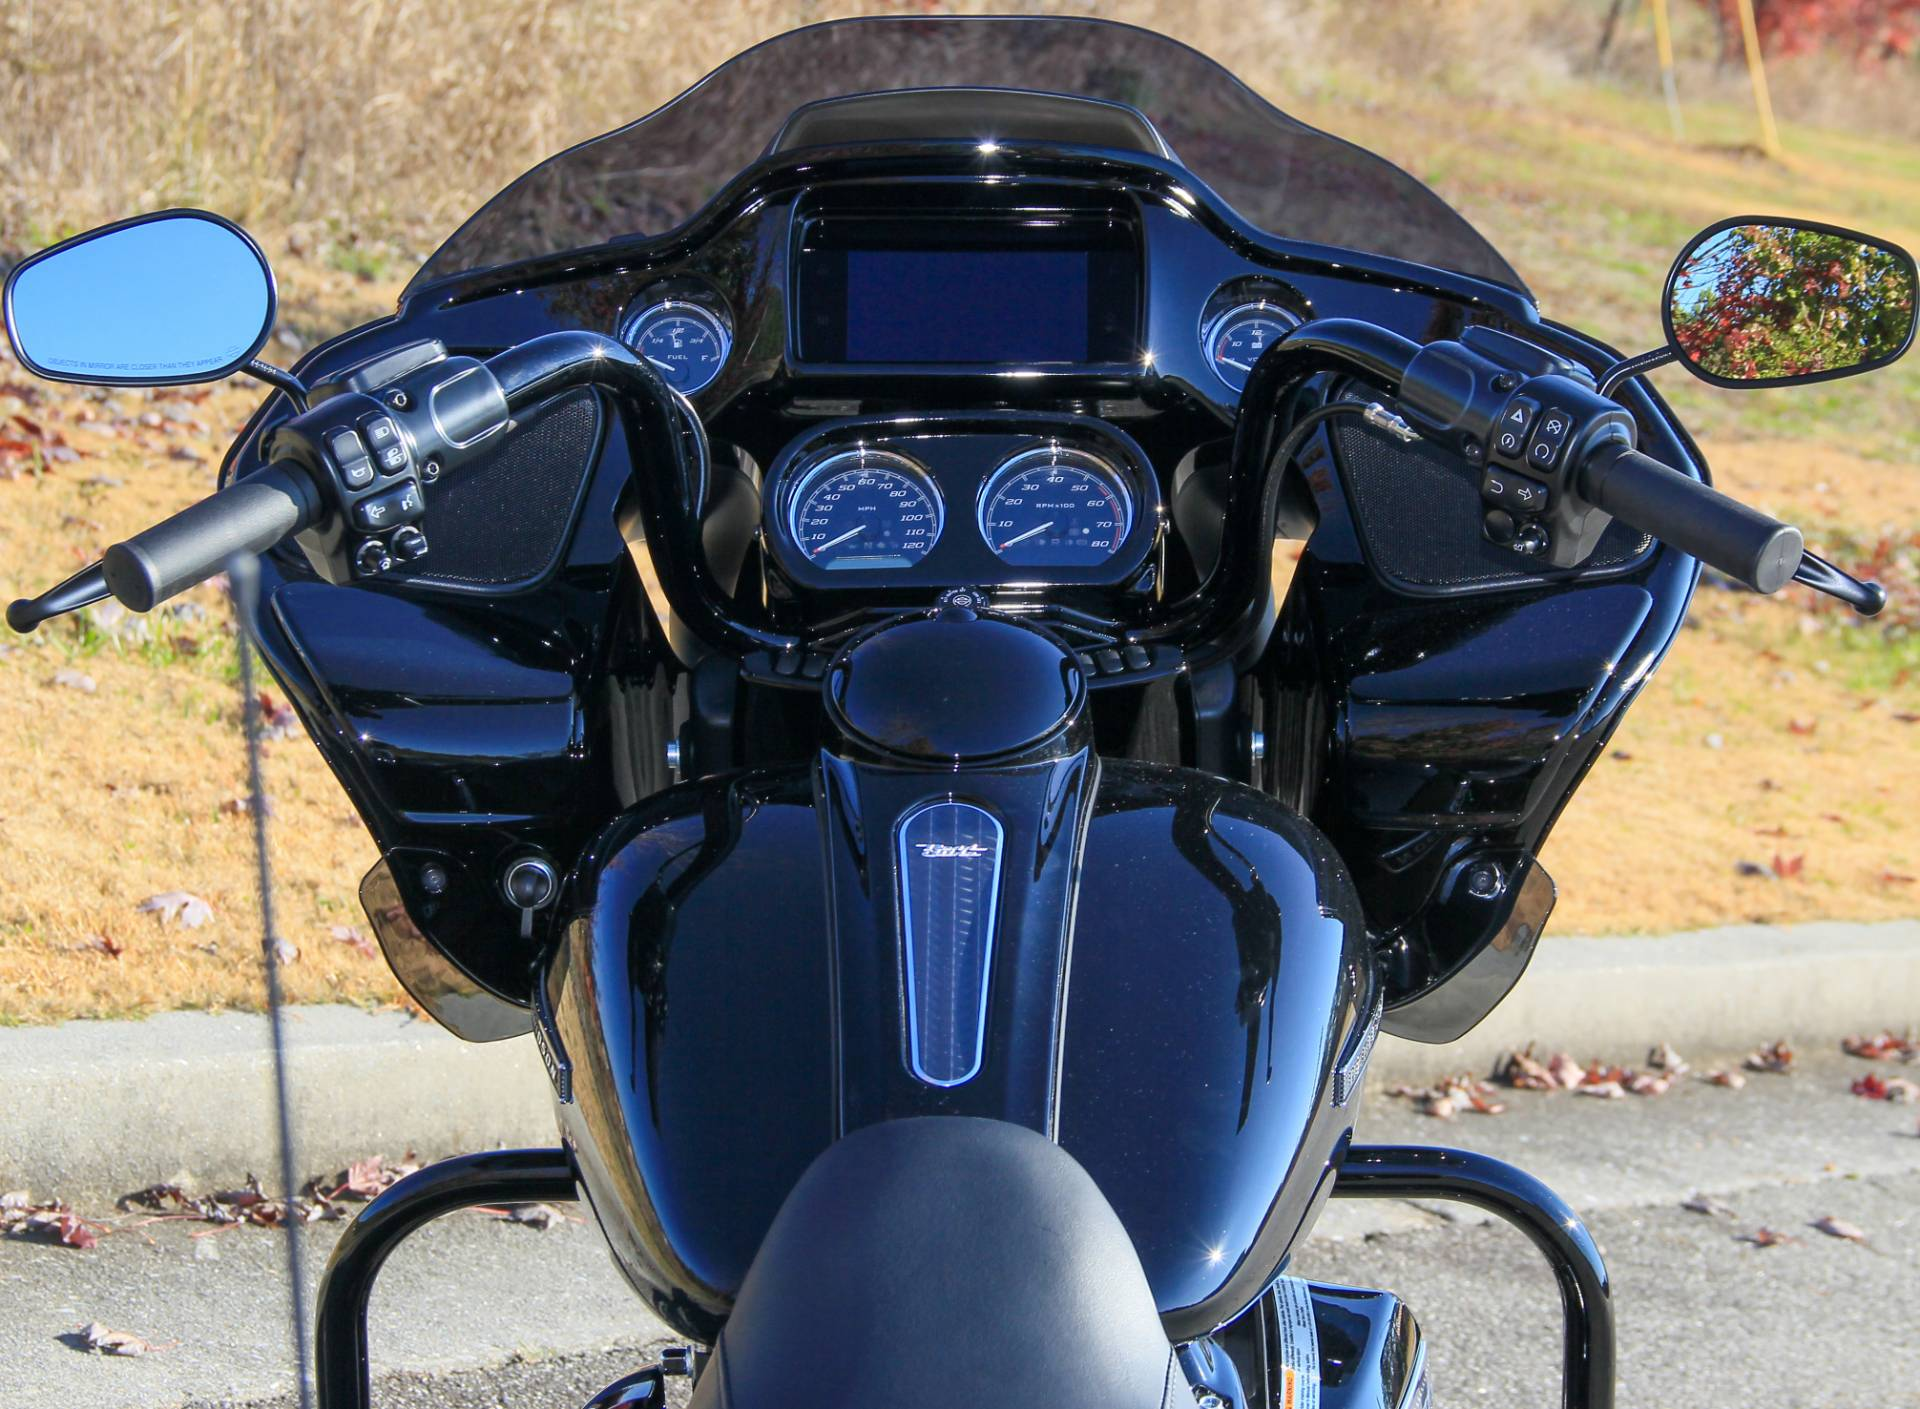 2020 Harley-Davidson Road Glide Special in Cartersville, Georgia - Photo 8